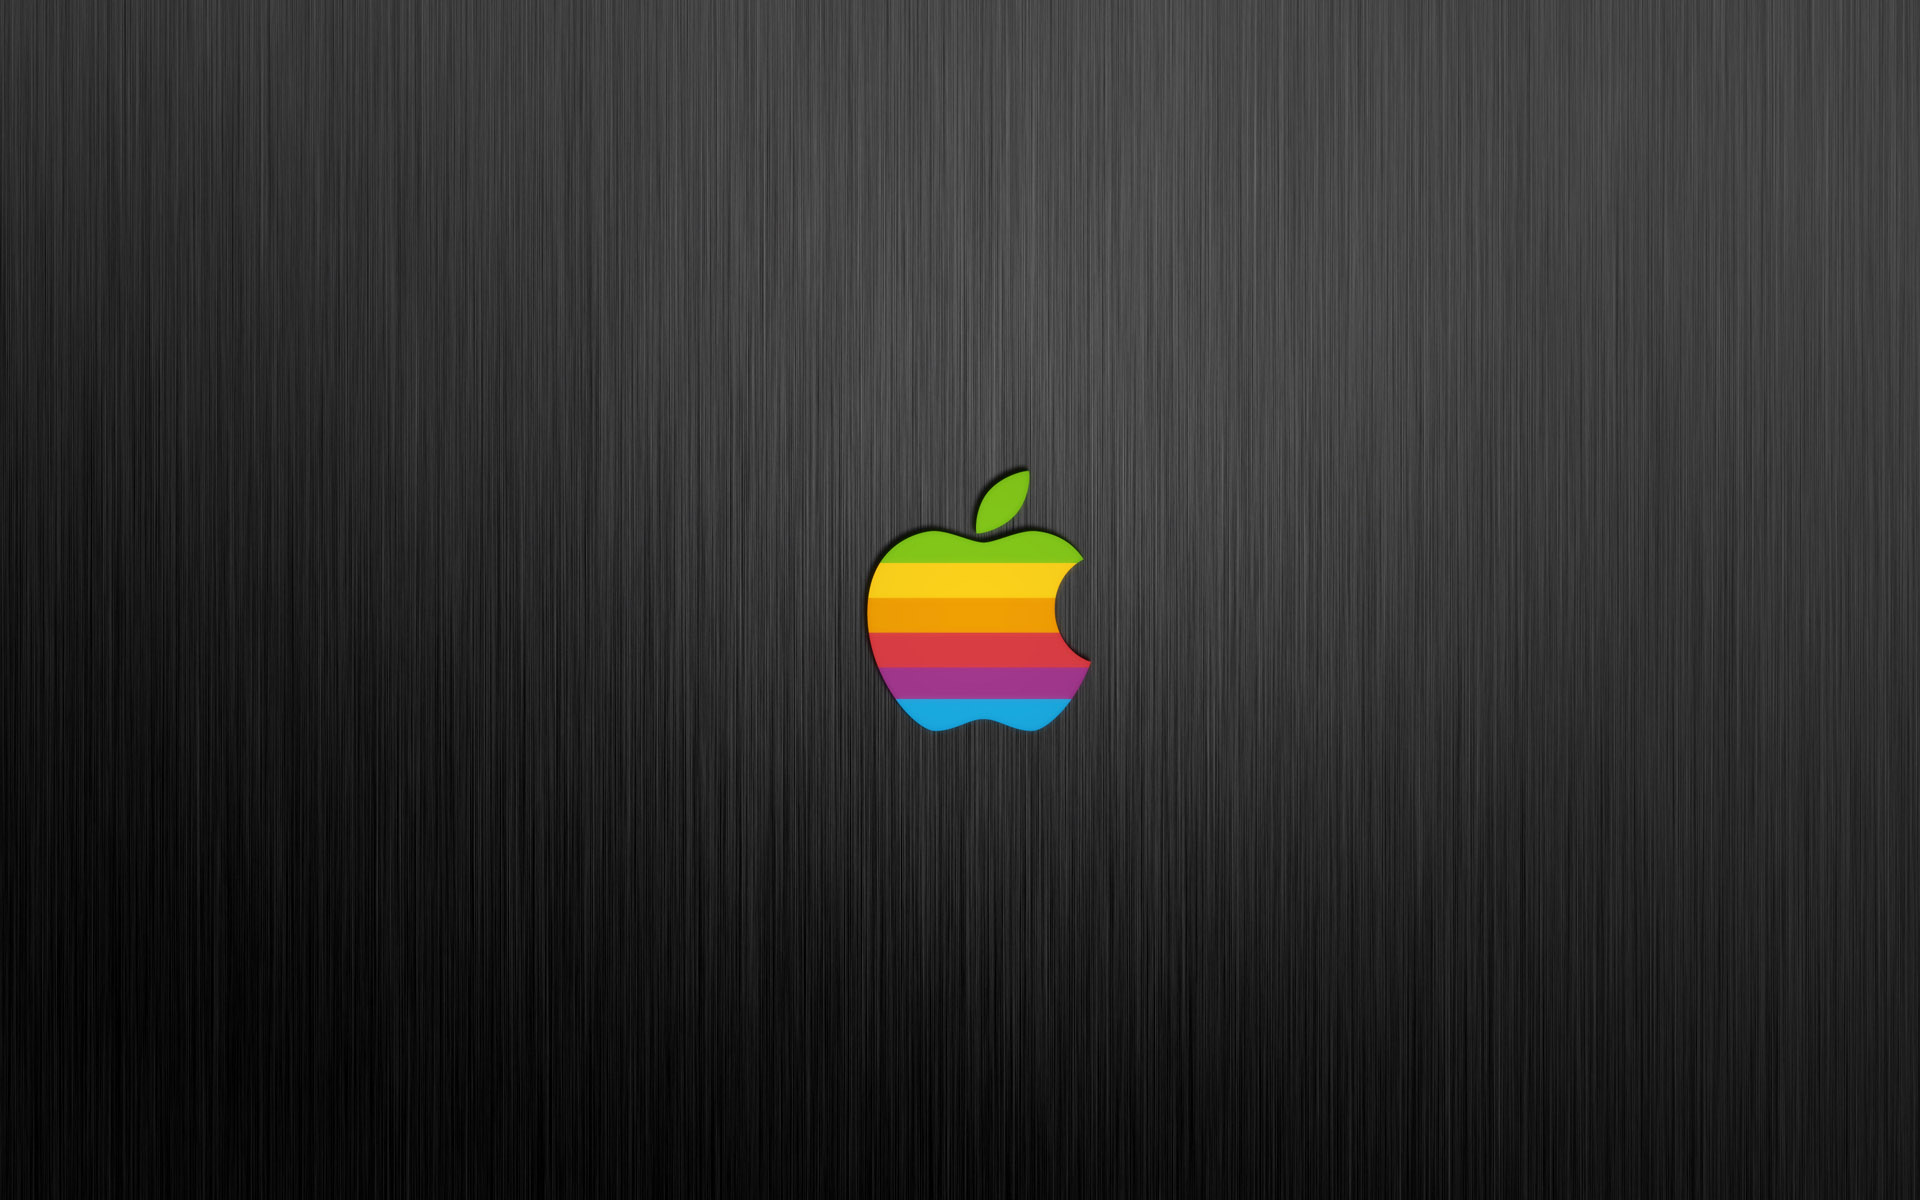 HD Apple wallpaper 19301